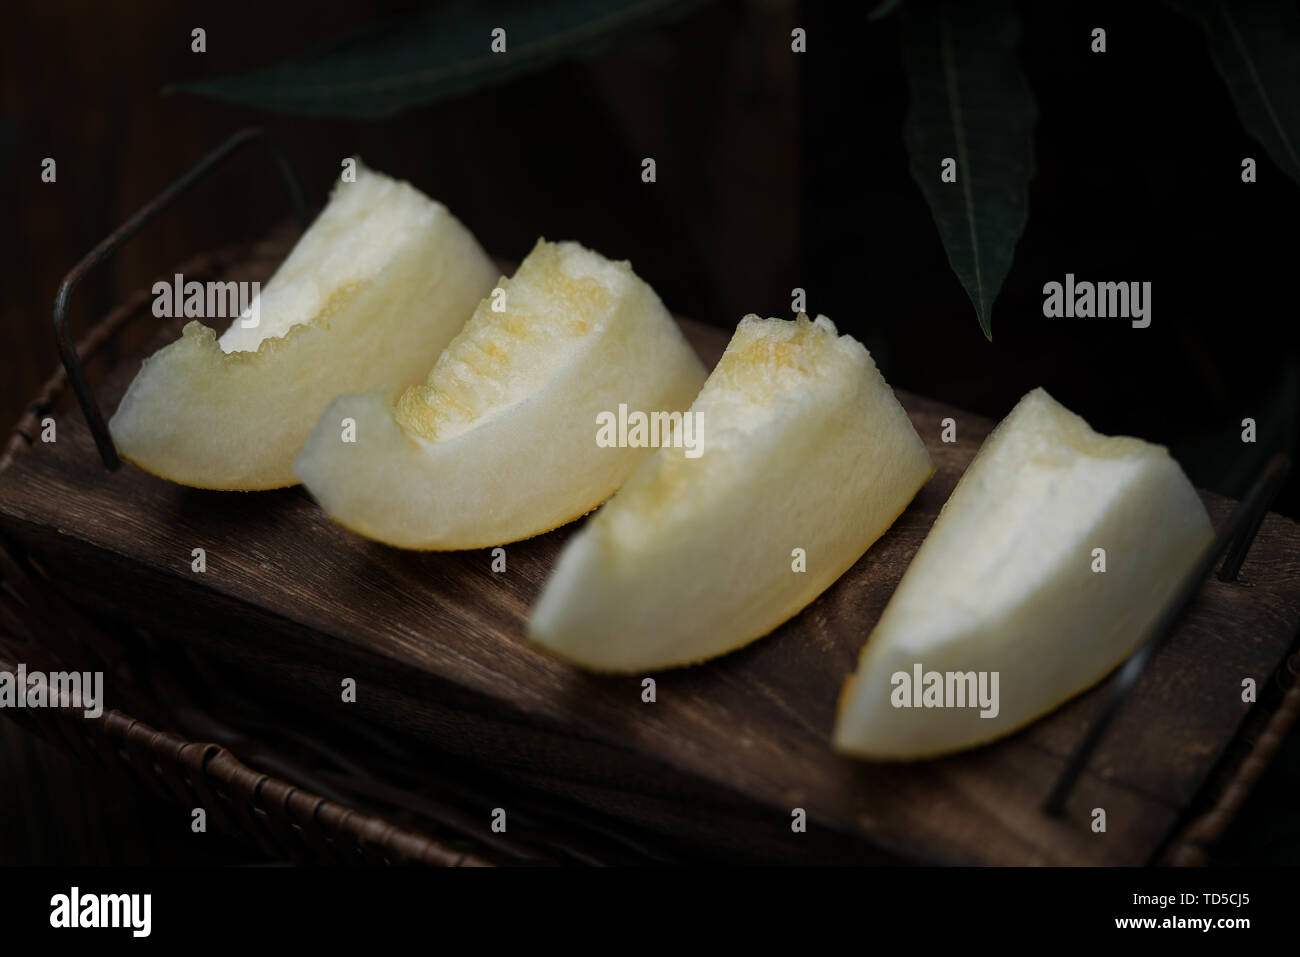 Melon Cantaloupe Afternoon Tea Stock Photo Alamy The green tea one helps get rid of acne and the cantaloupe one. alamy